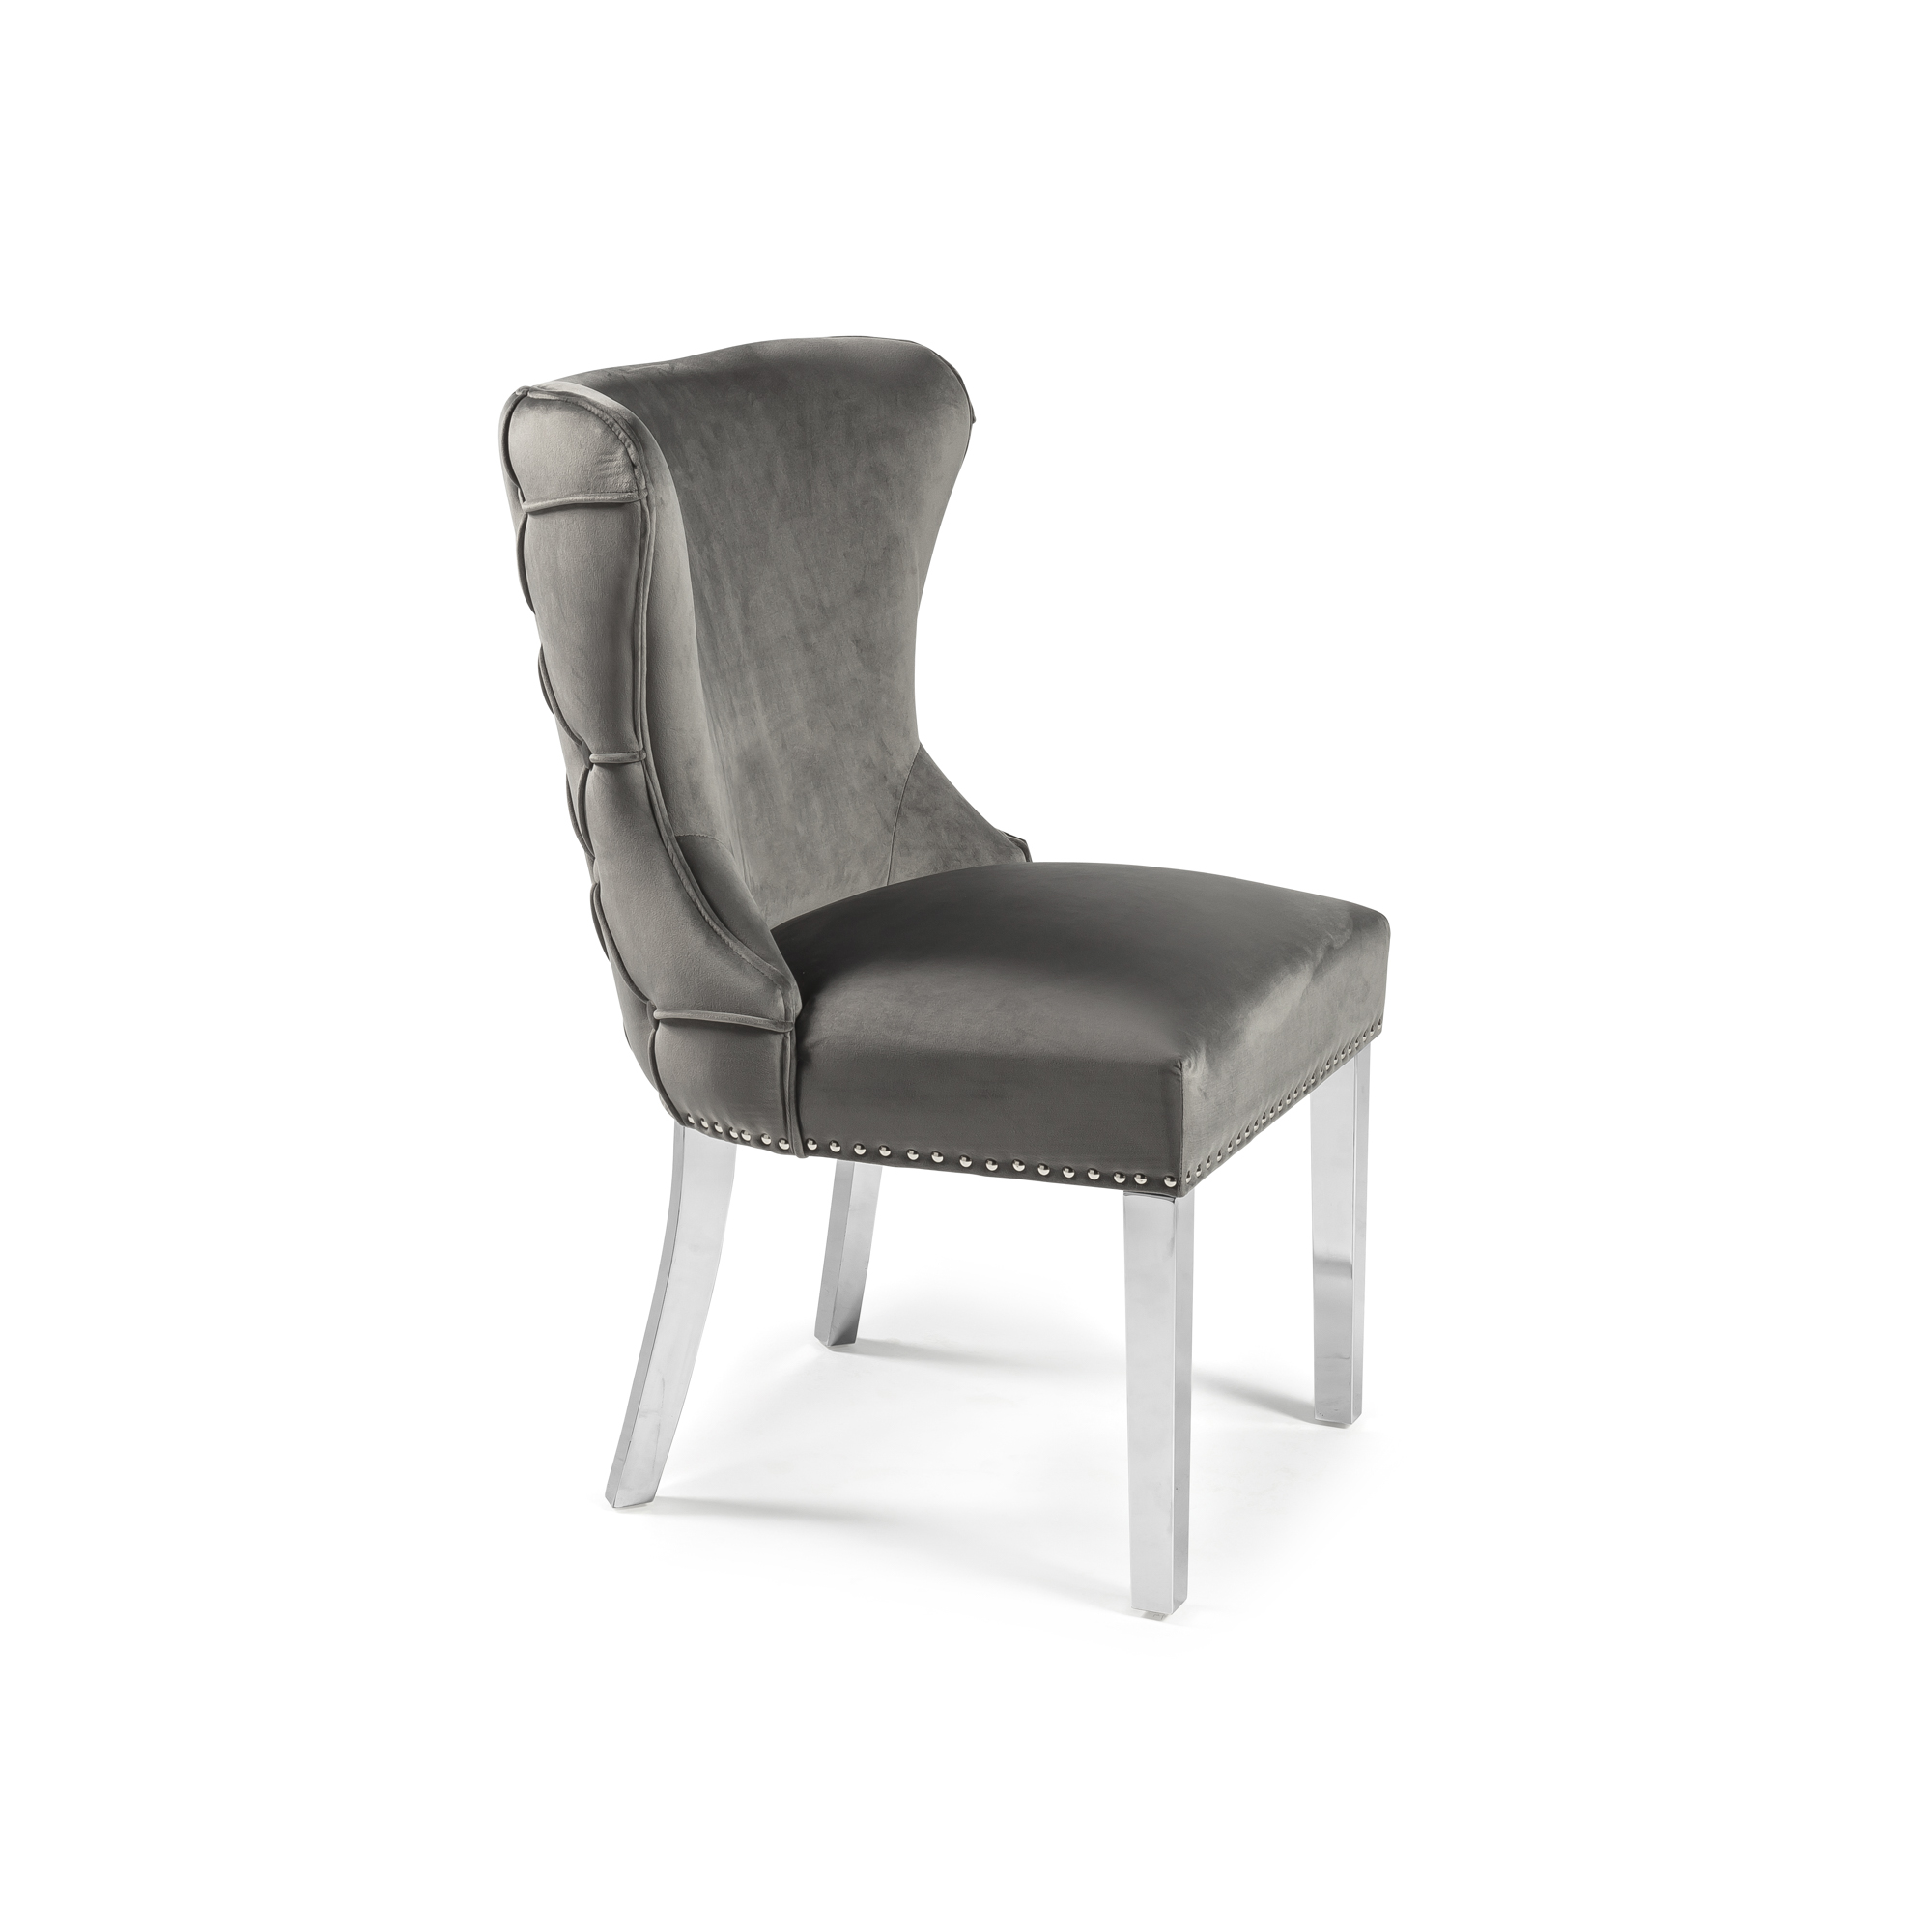 Grey Brushed Dining Chair with Steel Legs